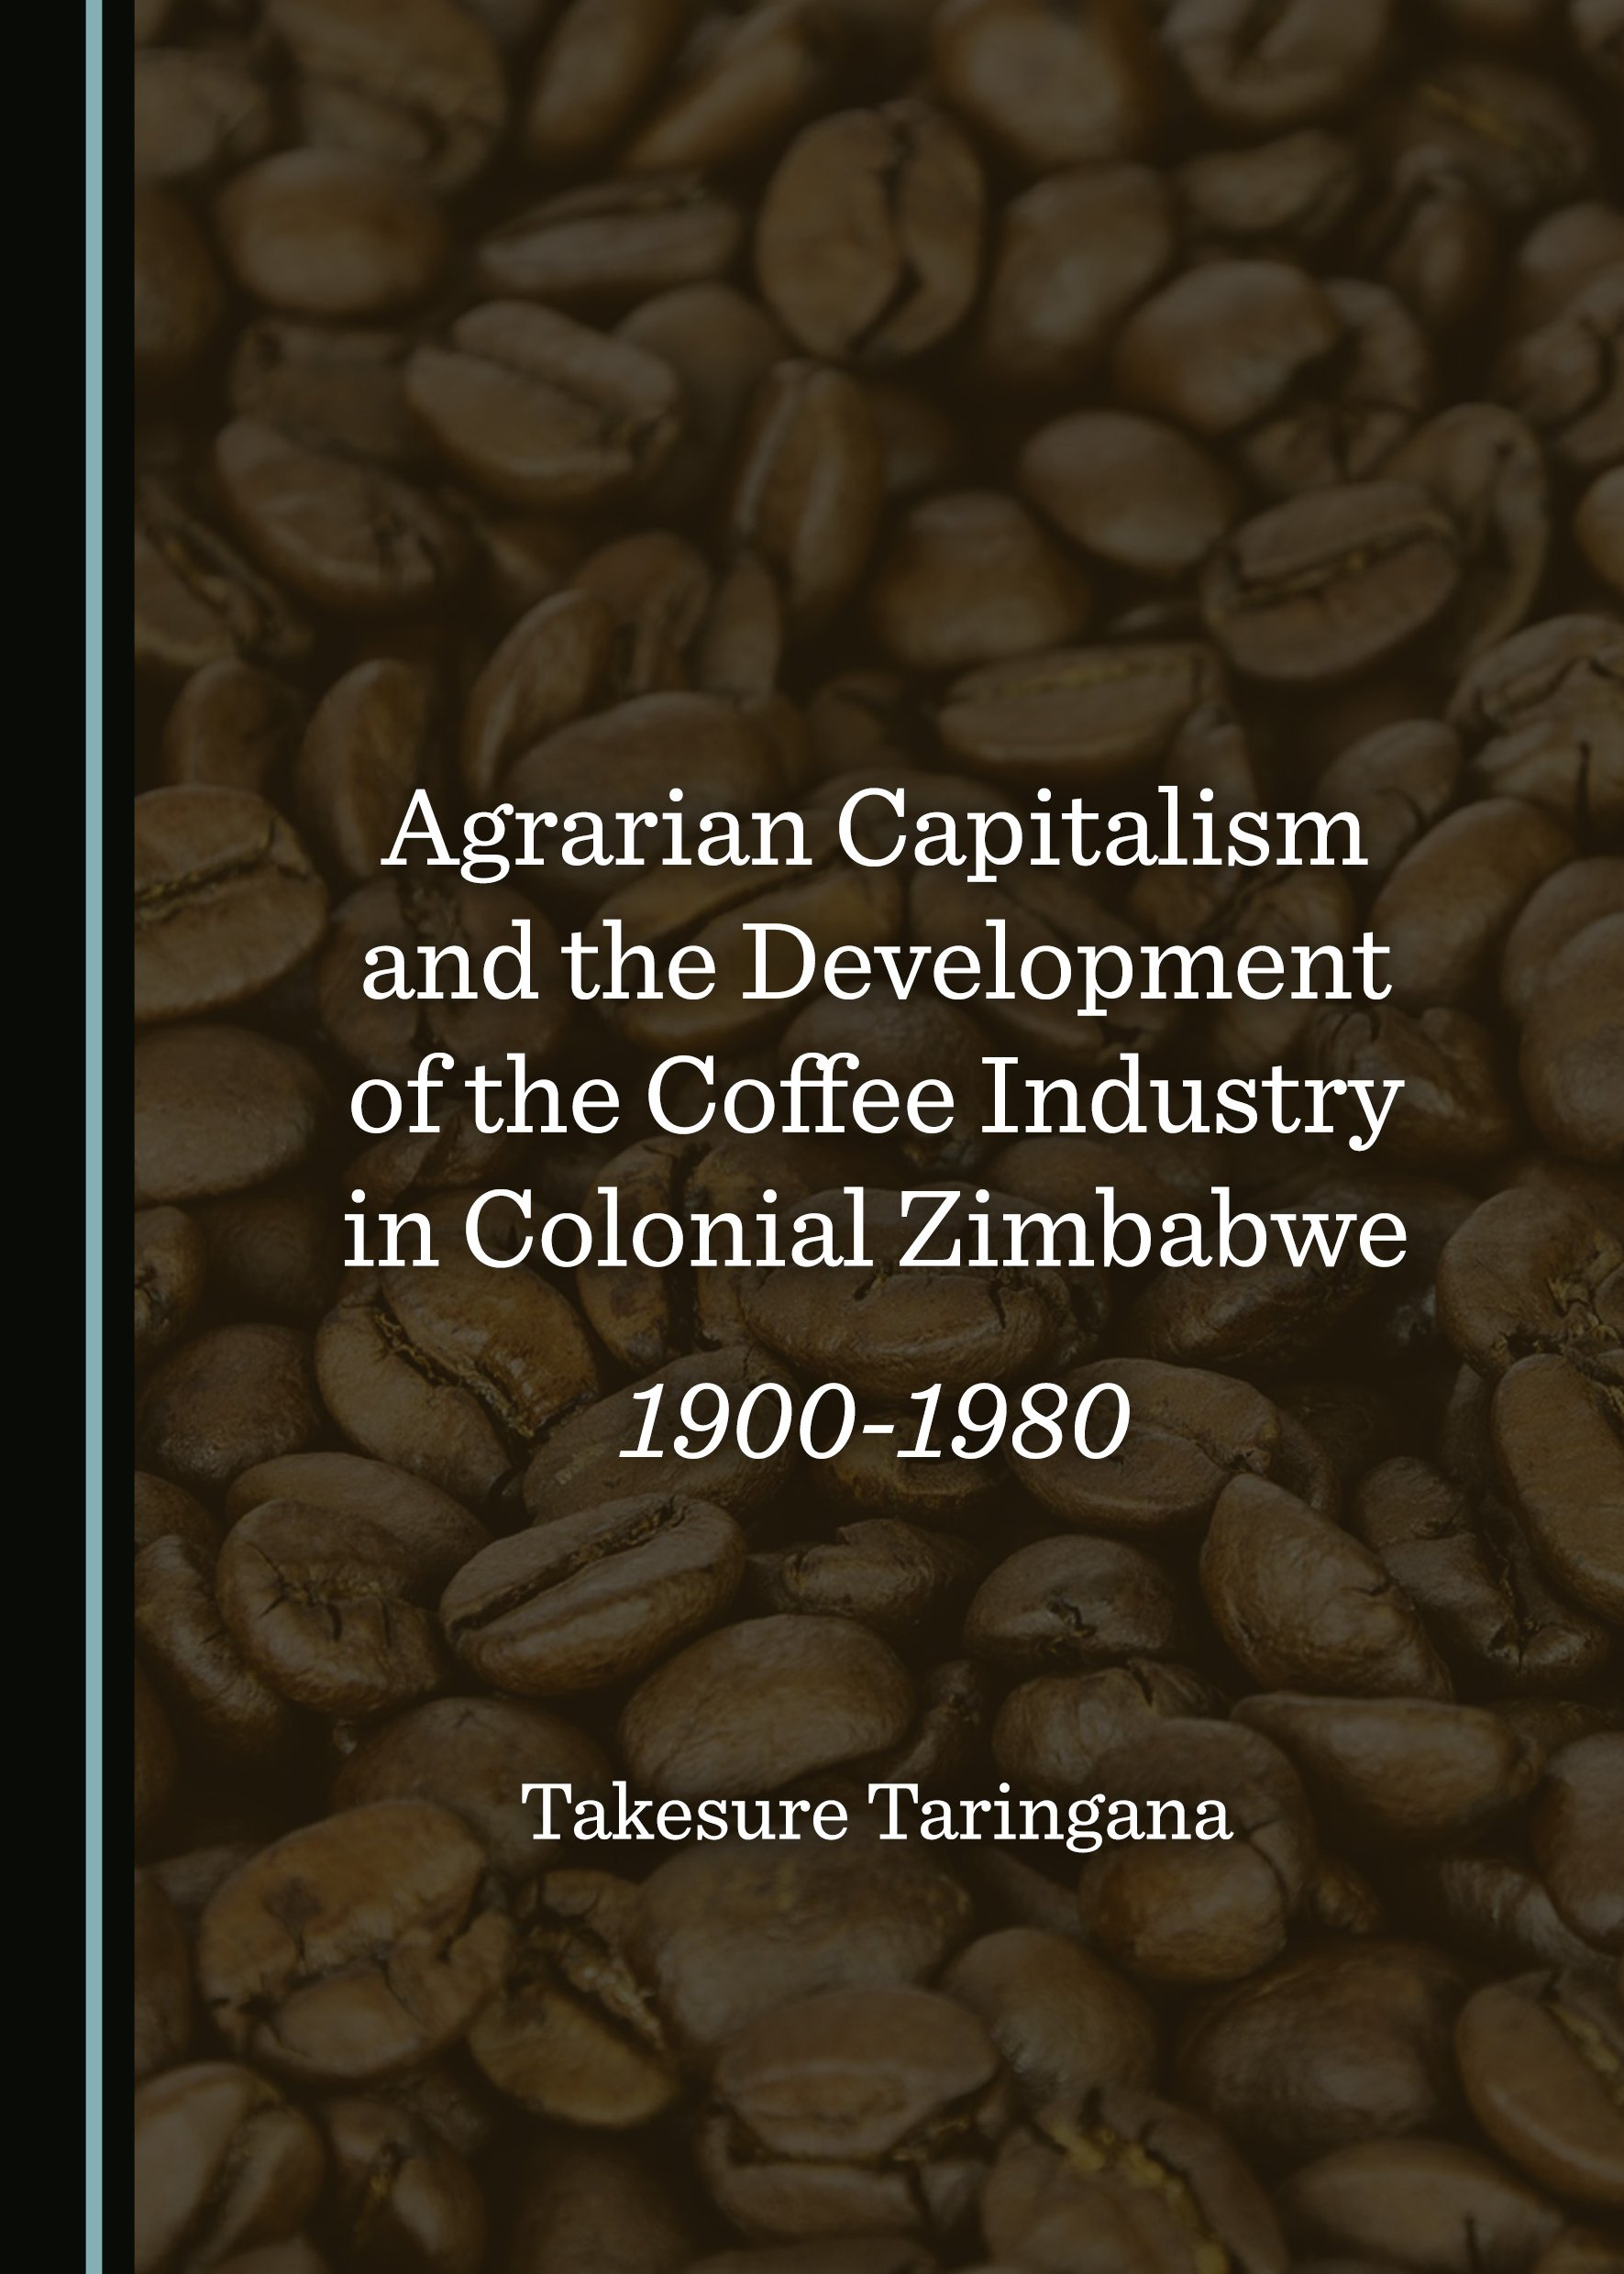 Agrarian Capitalism and the Development of the Coffee Industry in Colonial Zimbabwe: 1900-1980